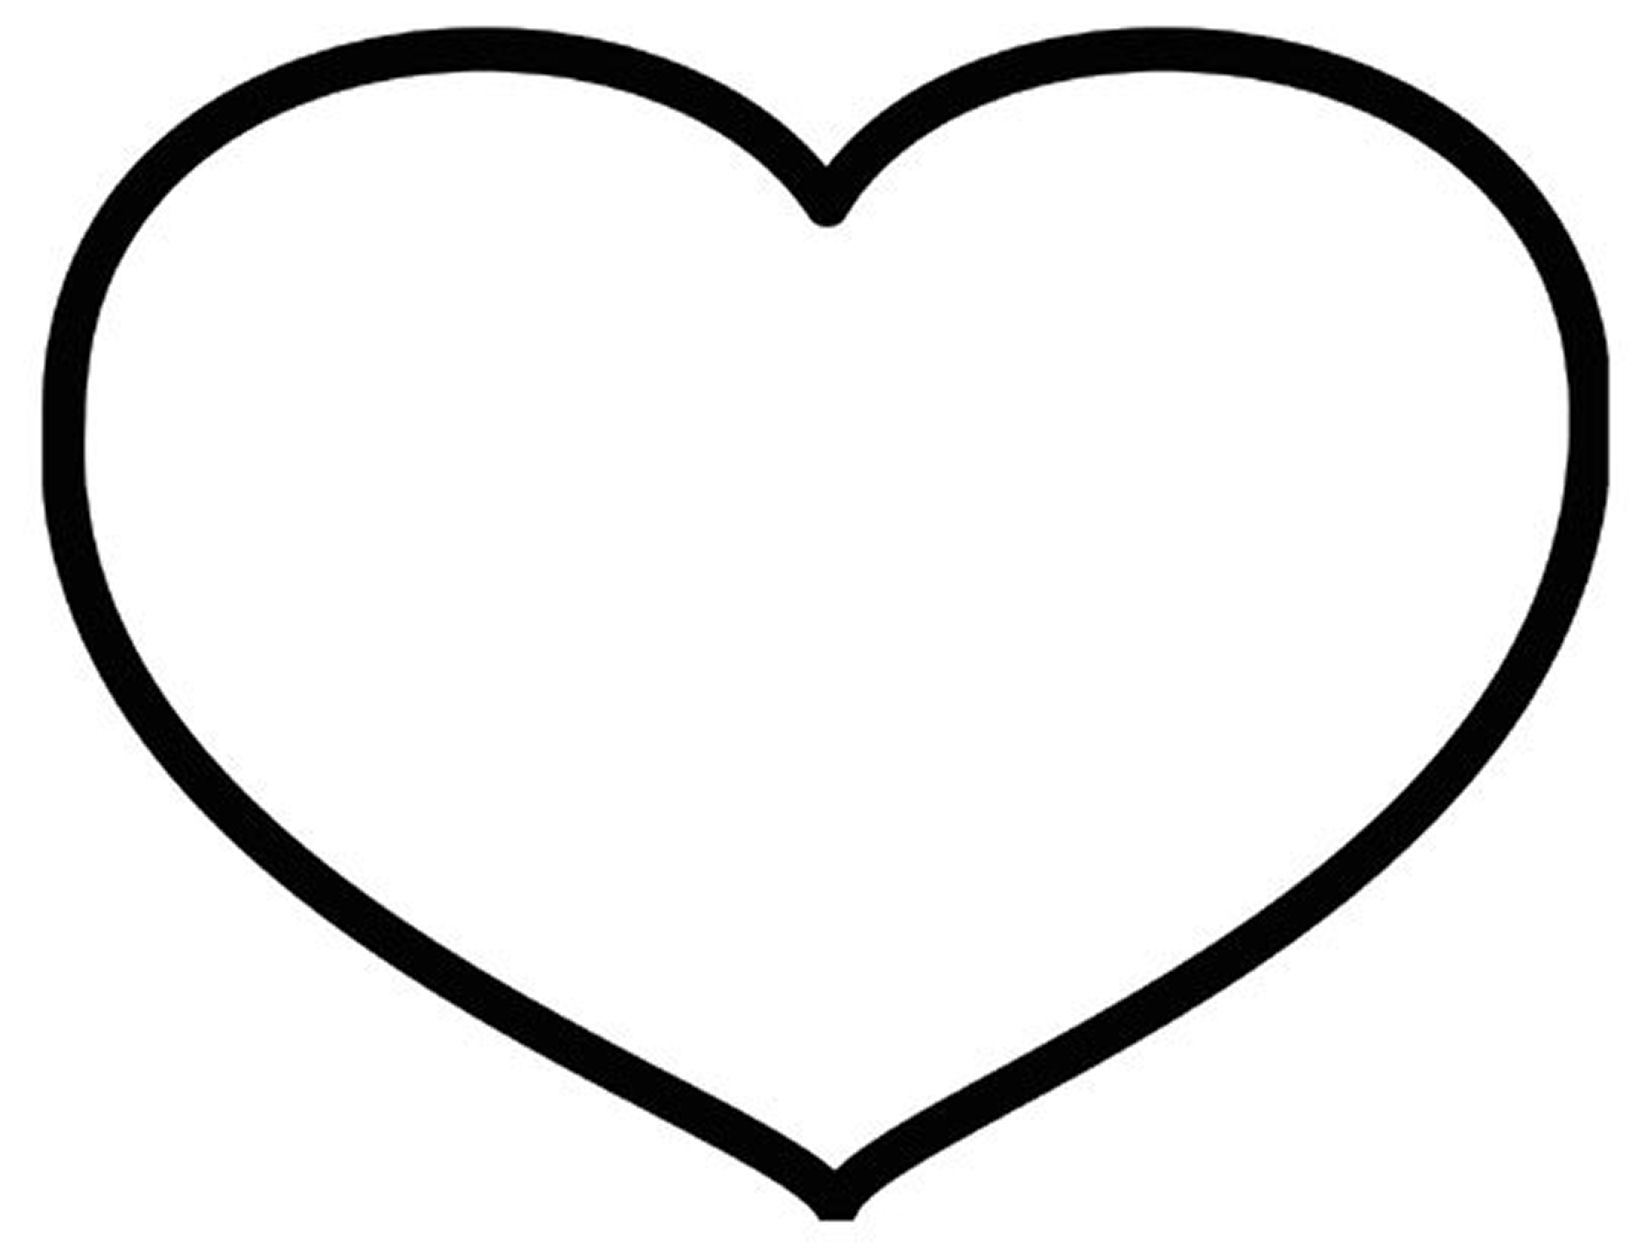 Heart Print Out Coloring Pages - Coloring